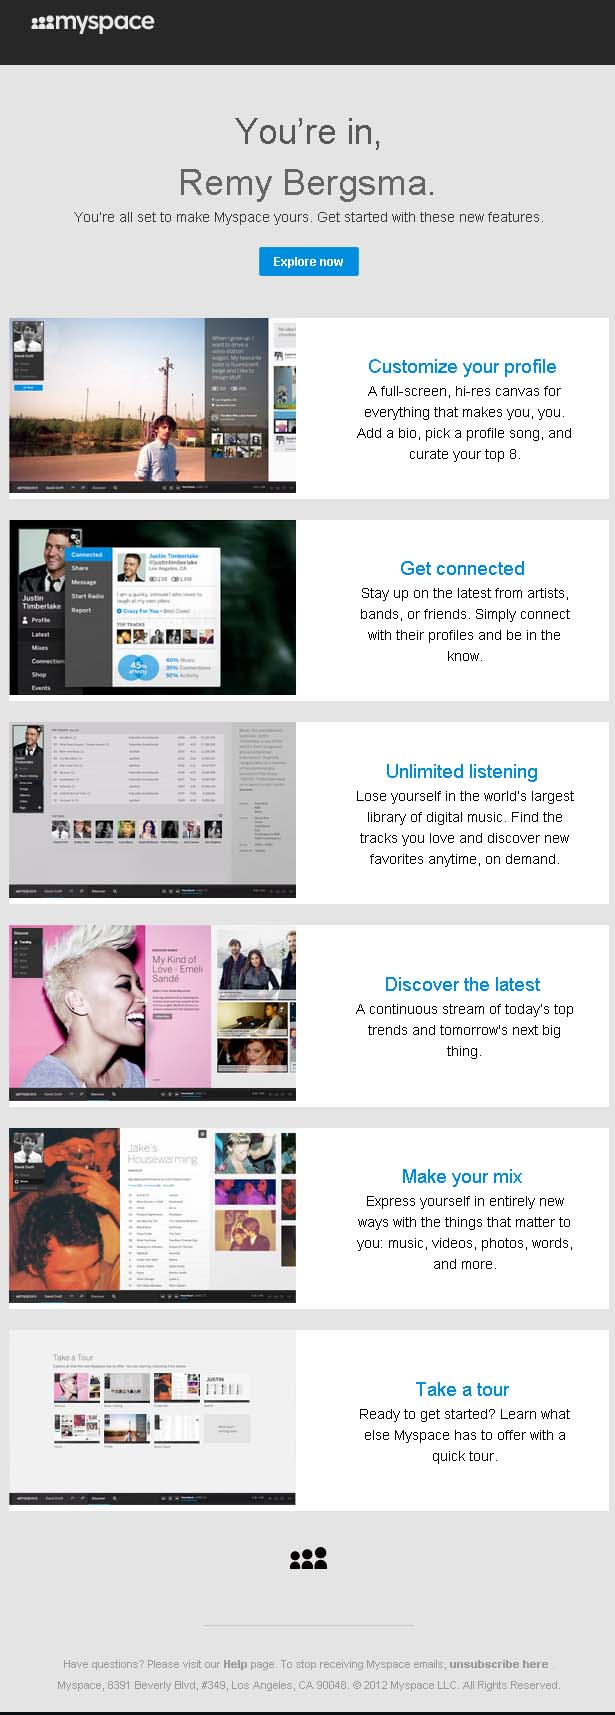 new_myspace_welcome_email_marketing_campaign